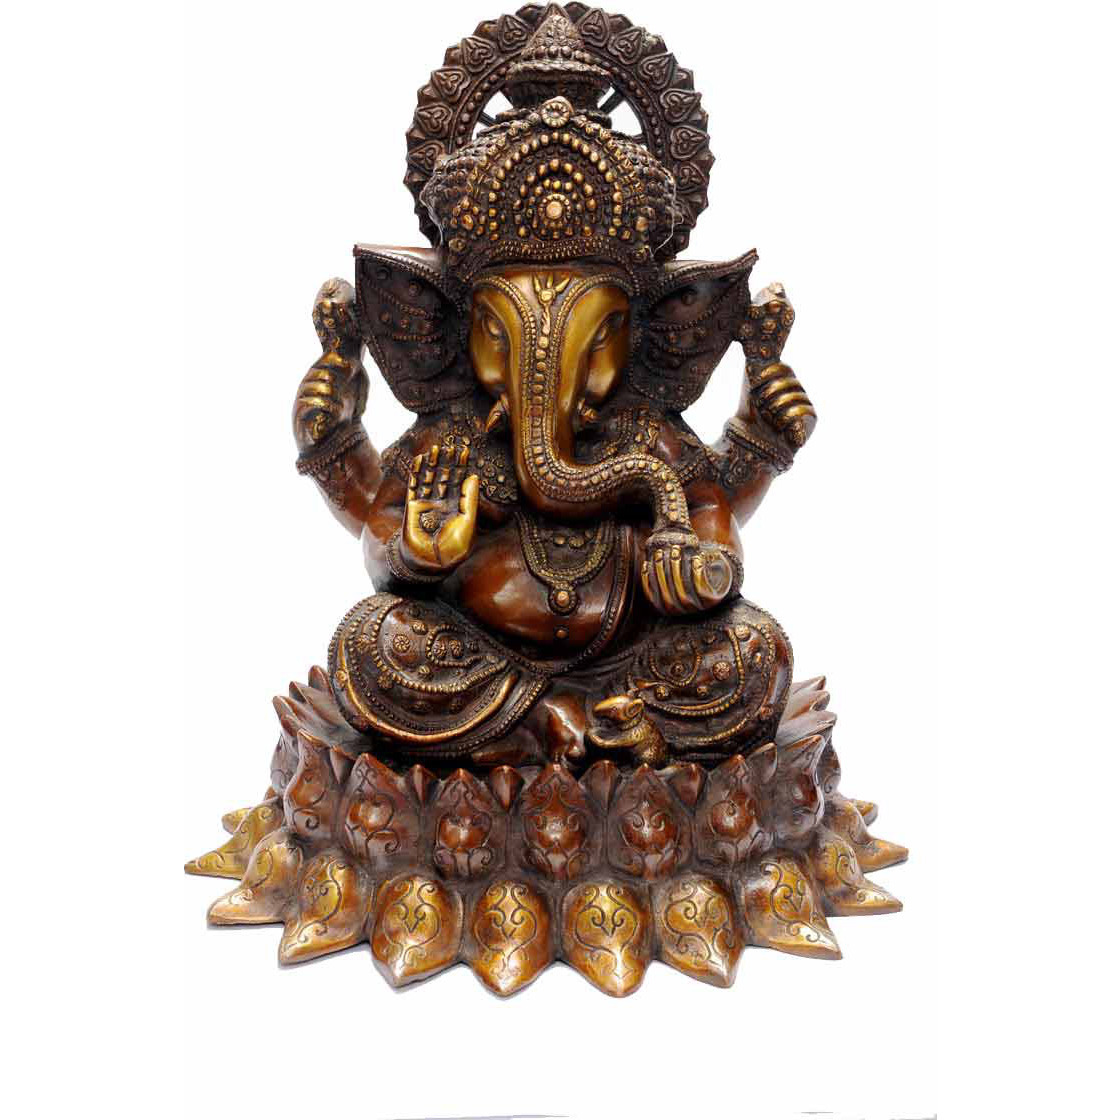 Brass chaturbhuja hinduism elphant lord ganesha spiritual antique dicor 15